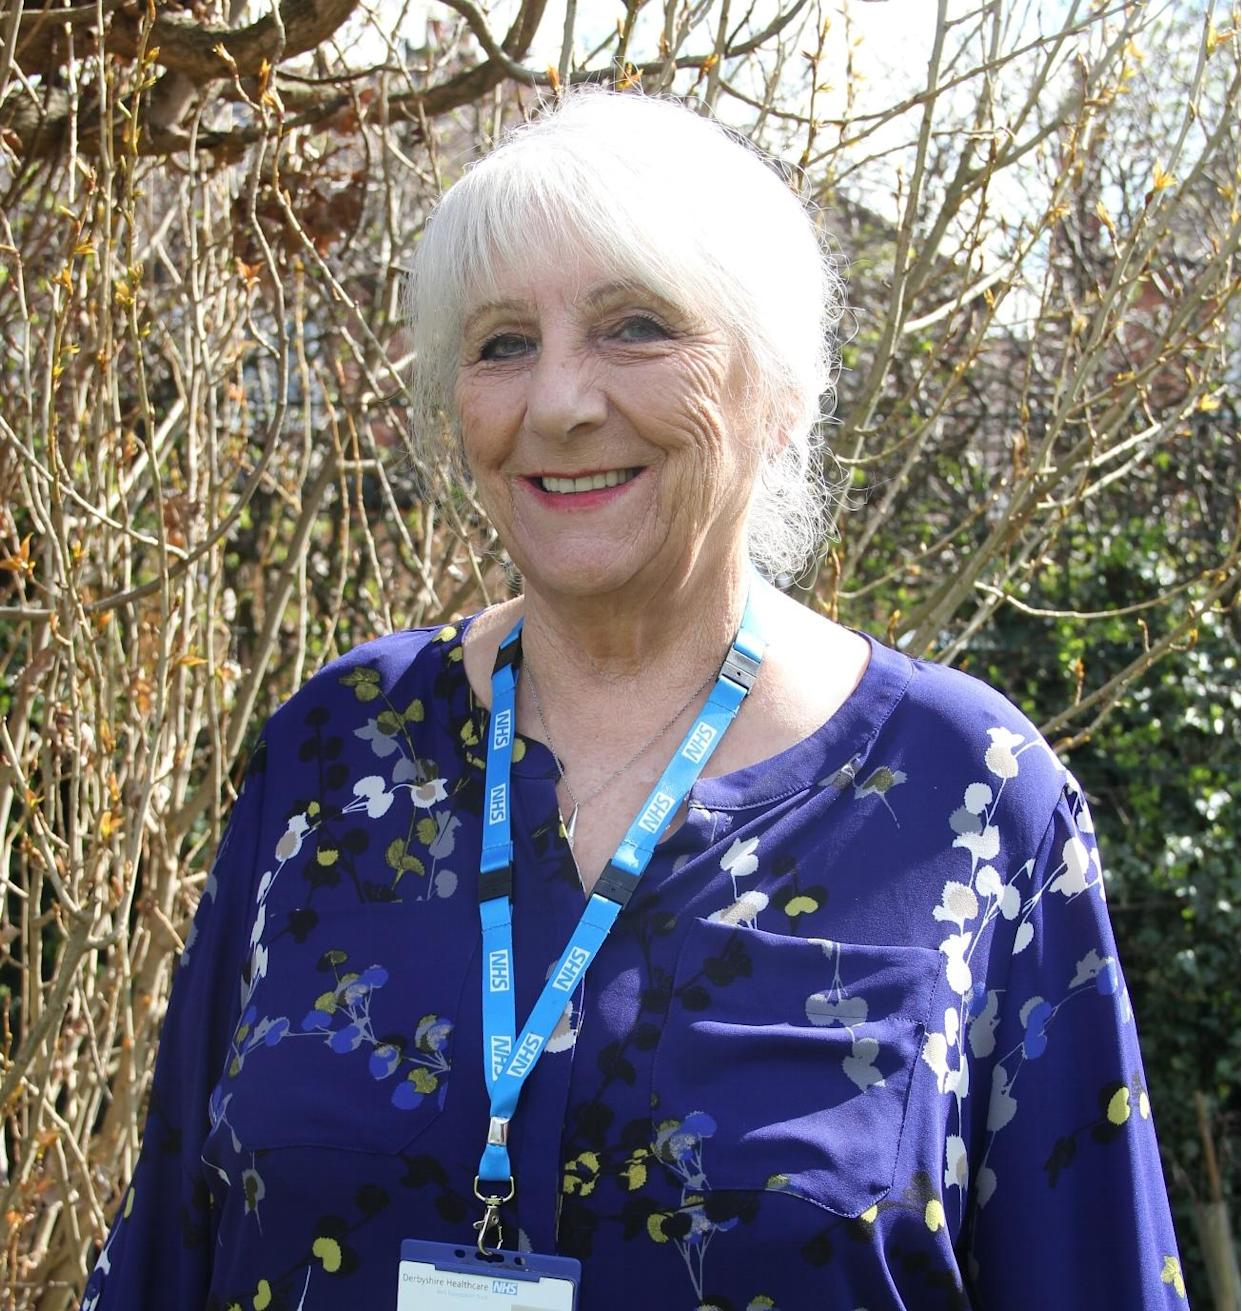 Tributes have been paid to Ann Shepherd, an 'honest and compassionate' NHS mental health counsellor who died after contracting Covid-19 (PA)